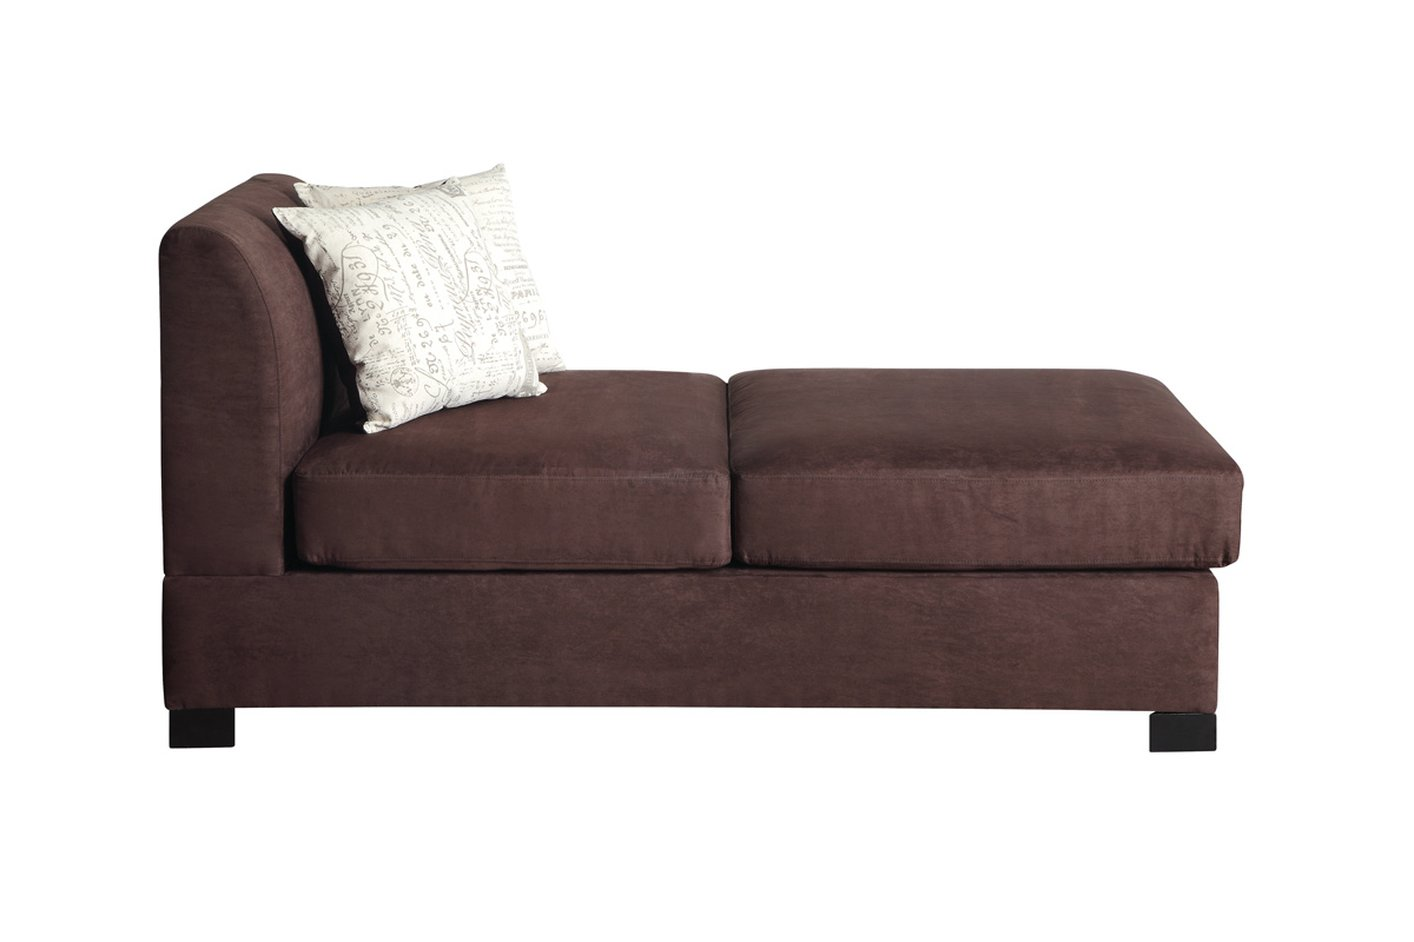 Nia brown fabric chaise lounge steal a sofa furniture for Brown chaise sofa